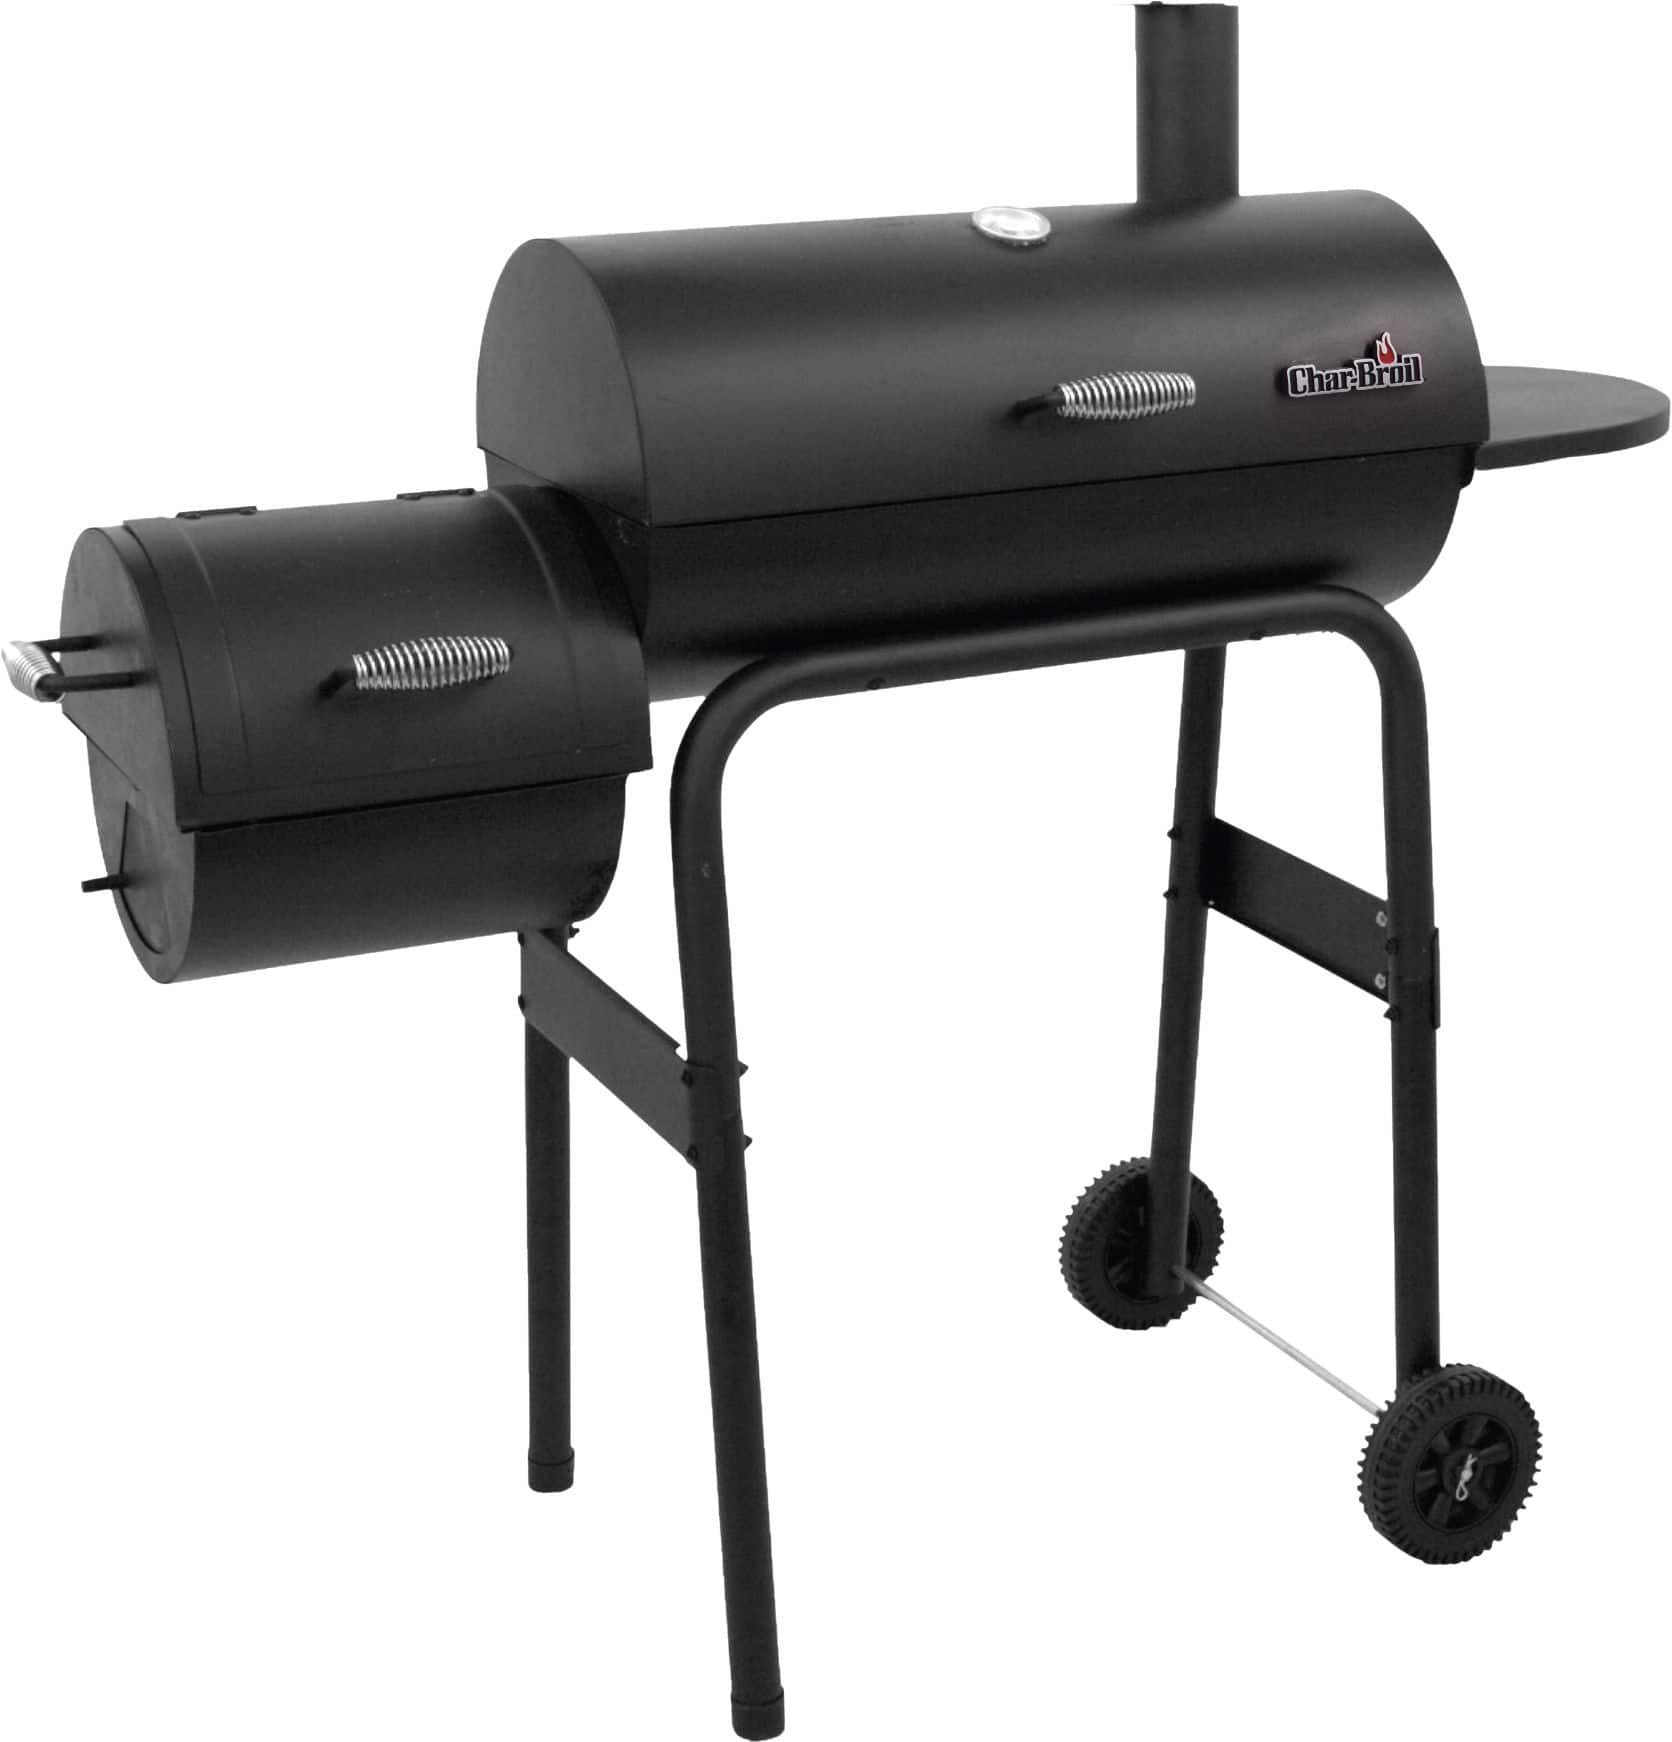 Char-Broil 430 Offset BBQ Smoker Grill $79.99 + Free Shipping